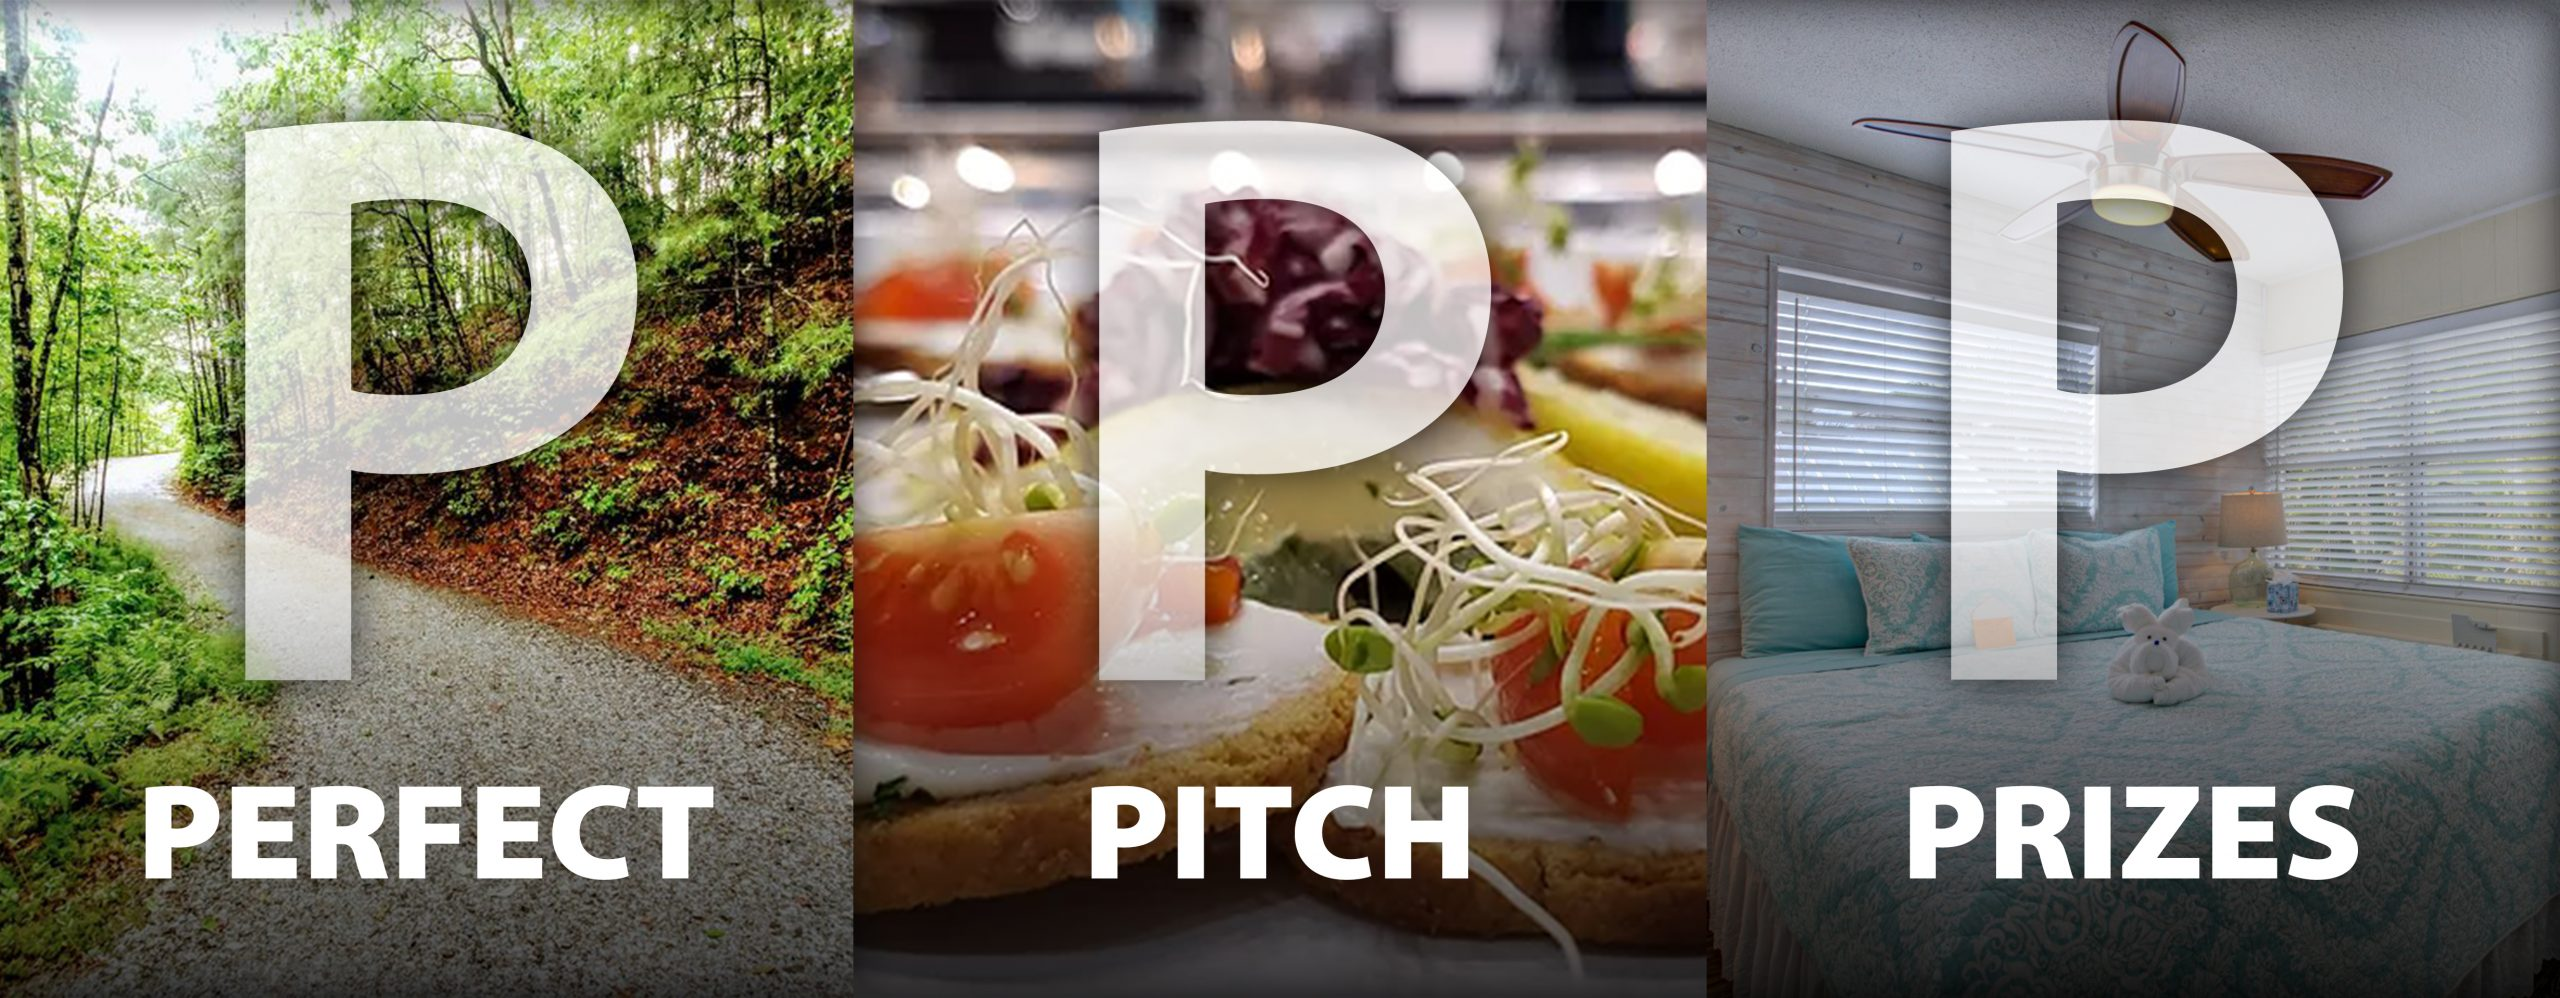 perfect pitch prizes